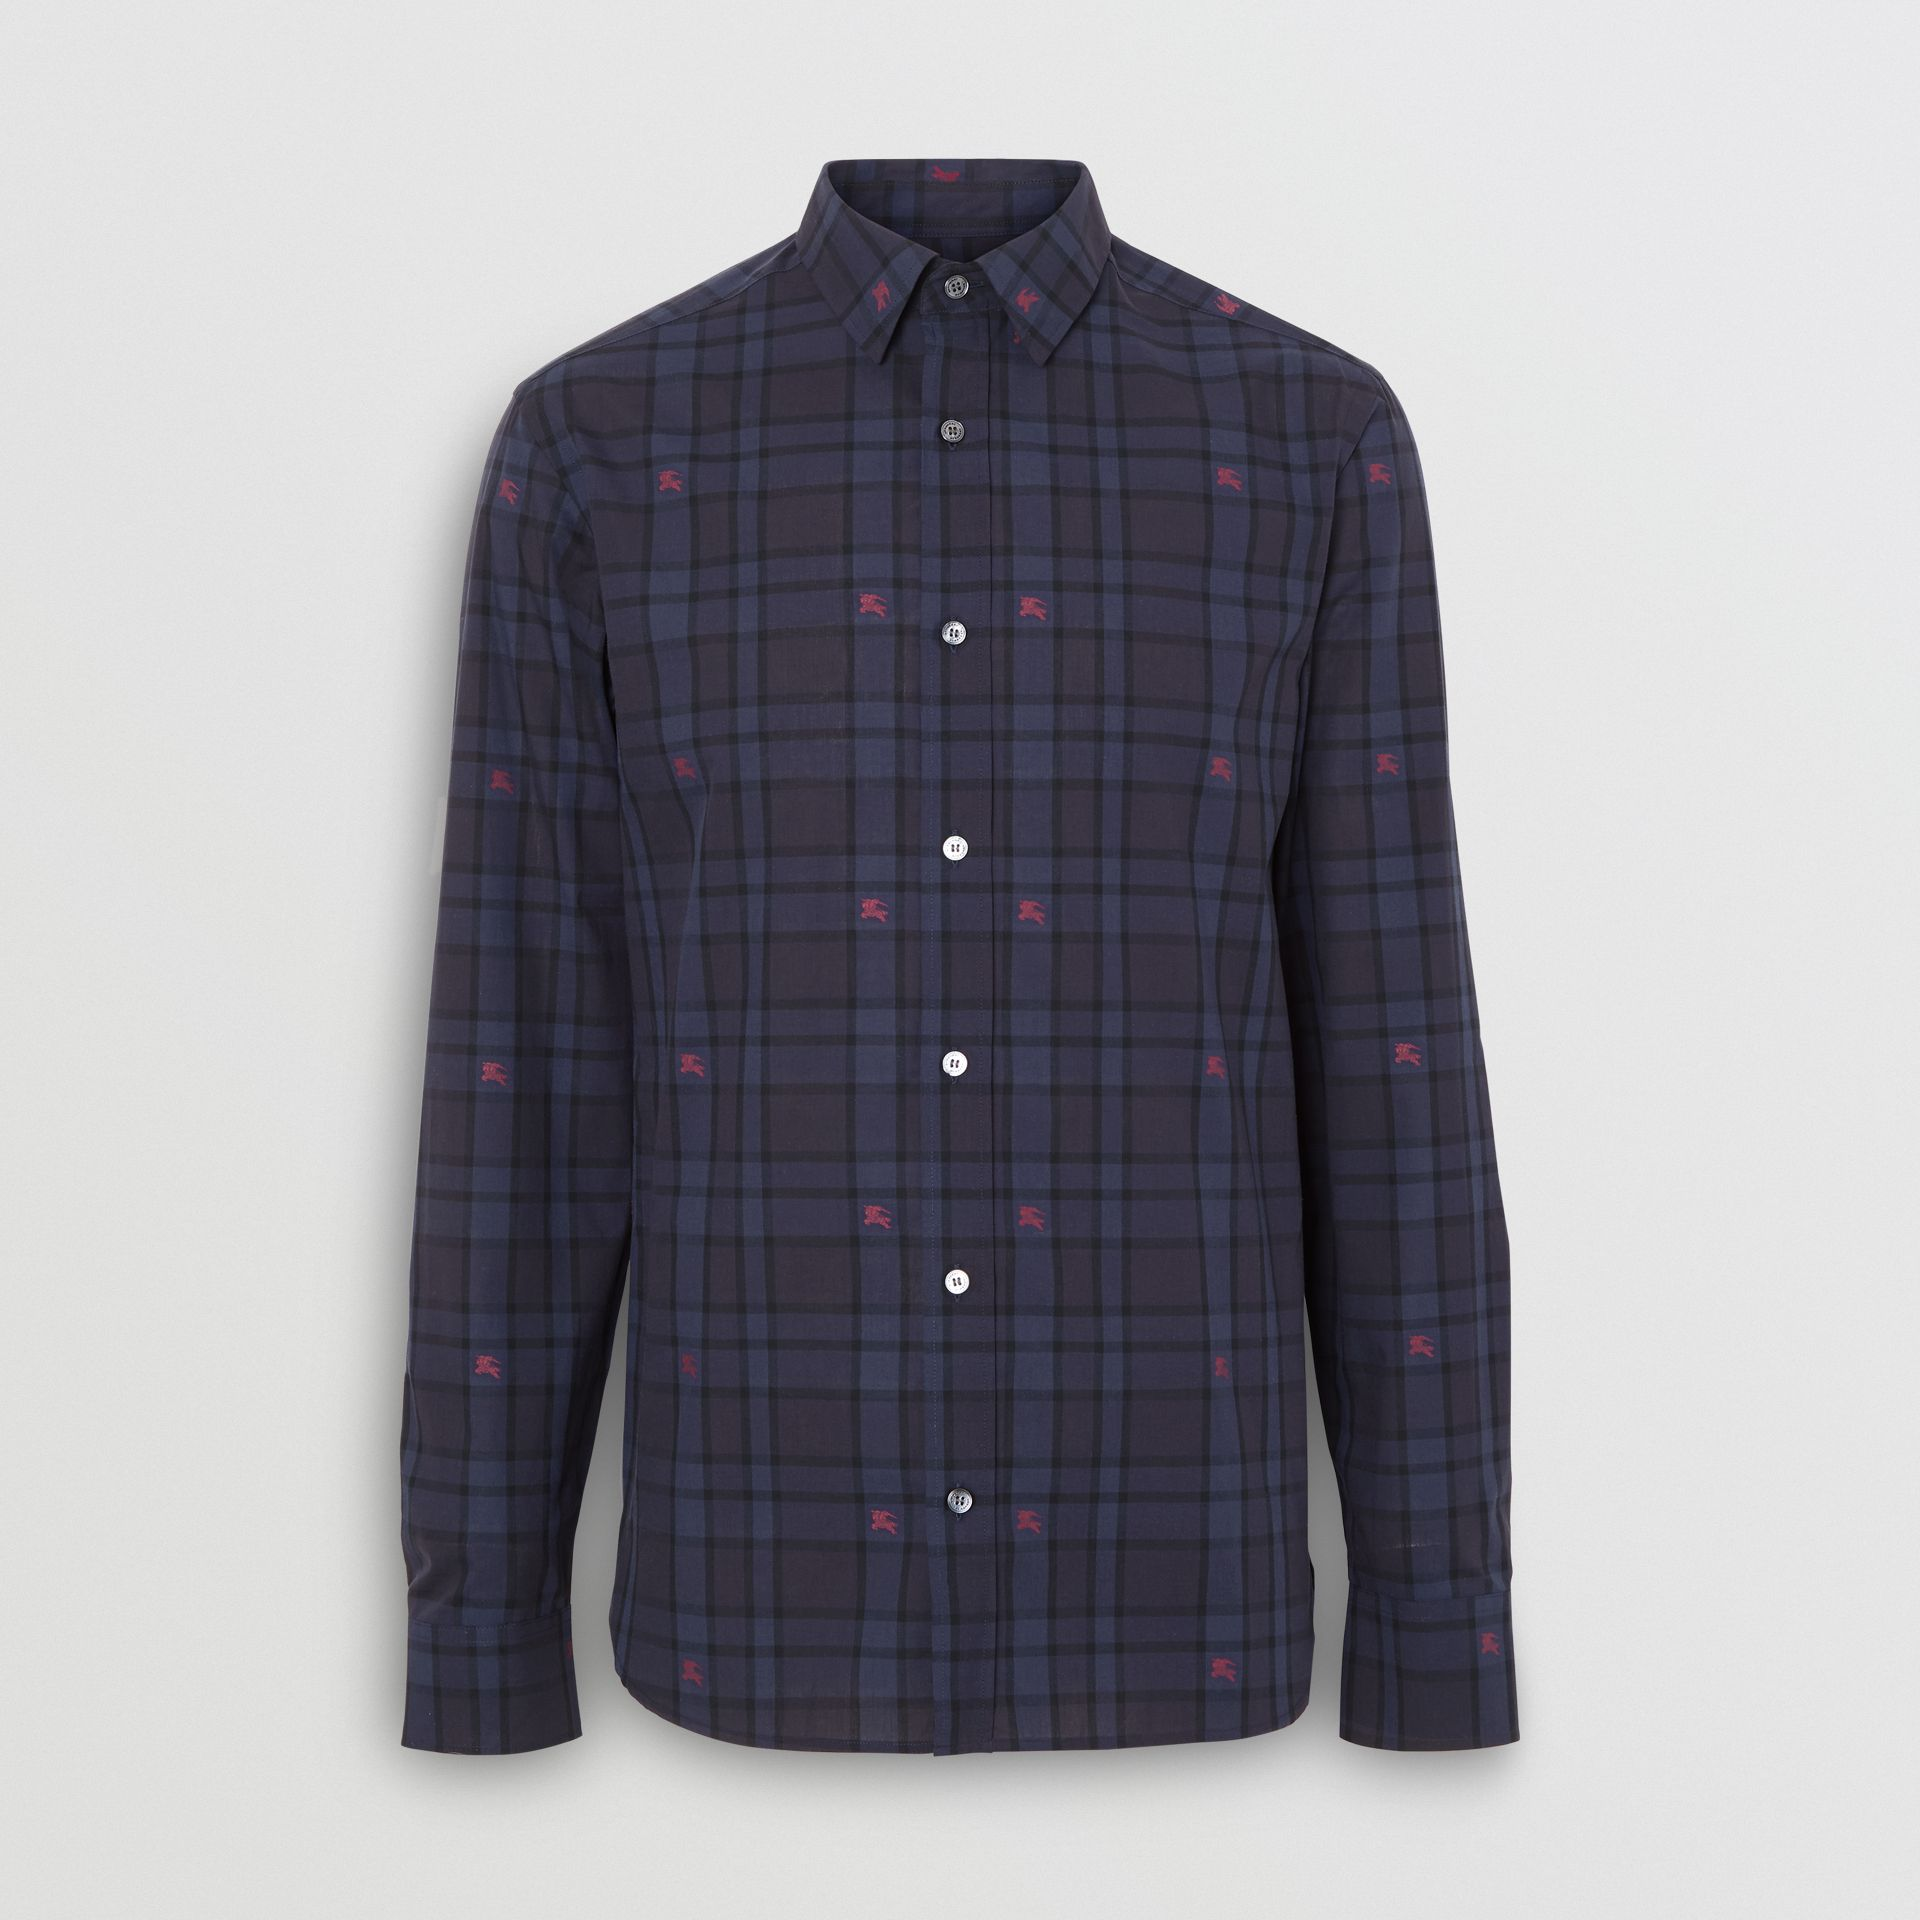 Equestrian Knight Check Cotton Shirt in Dark Indigo - Men | Burberry United Kingdom - gallery image 3